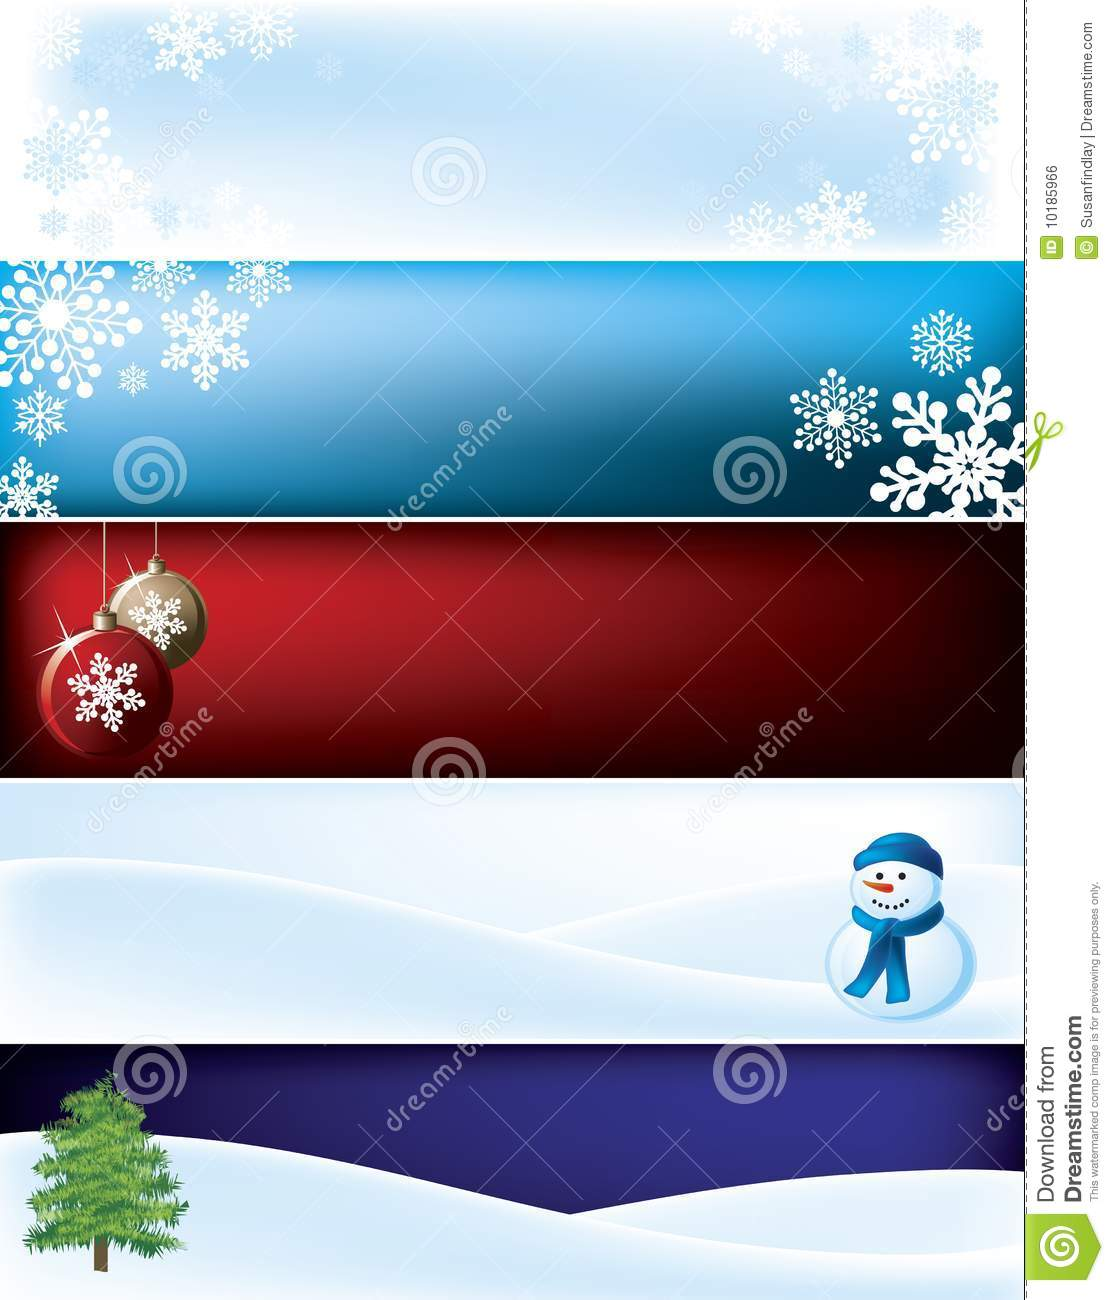 Christmas Banner Background Royalty Free Stock Image - Image: 10185966